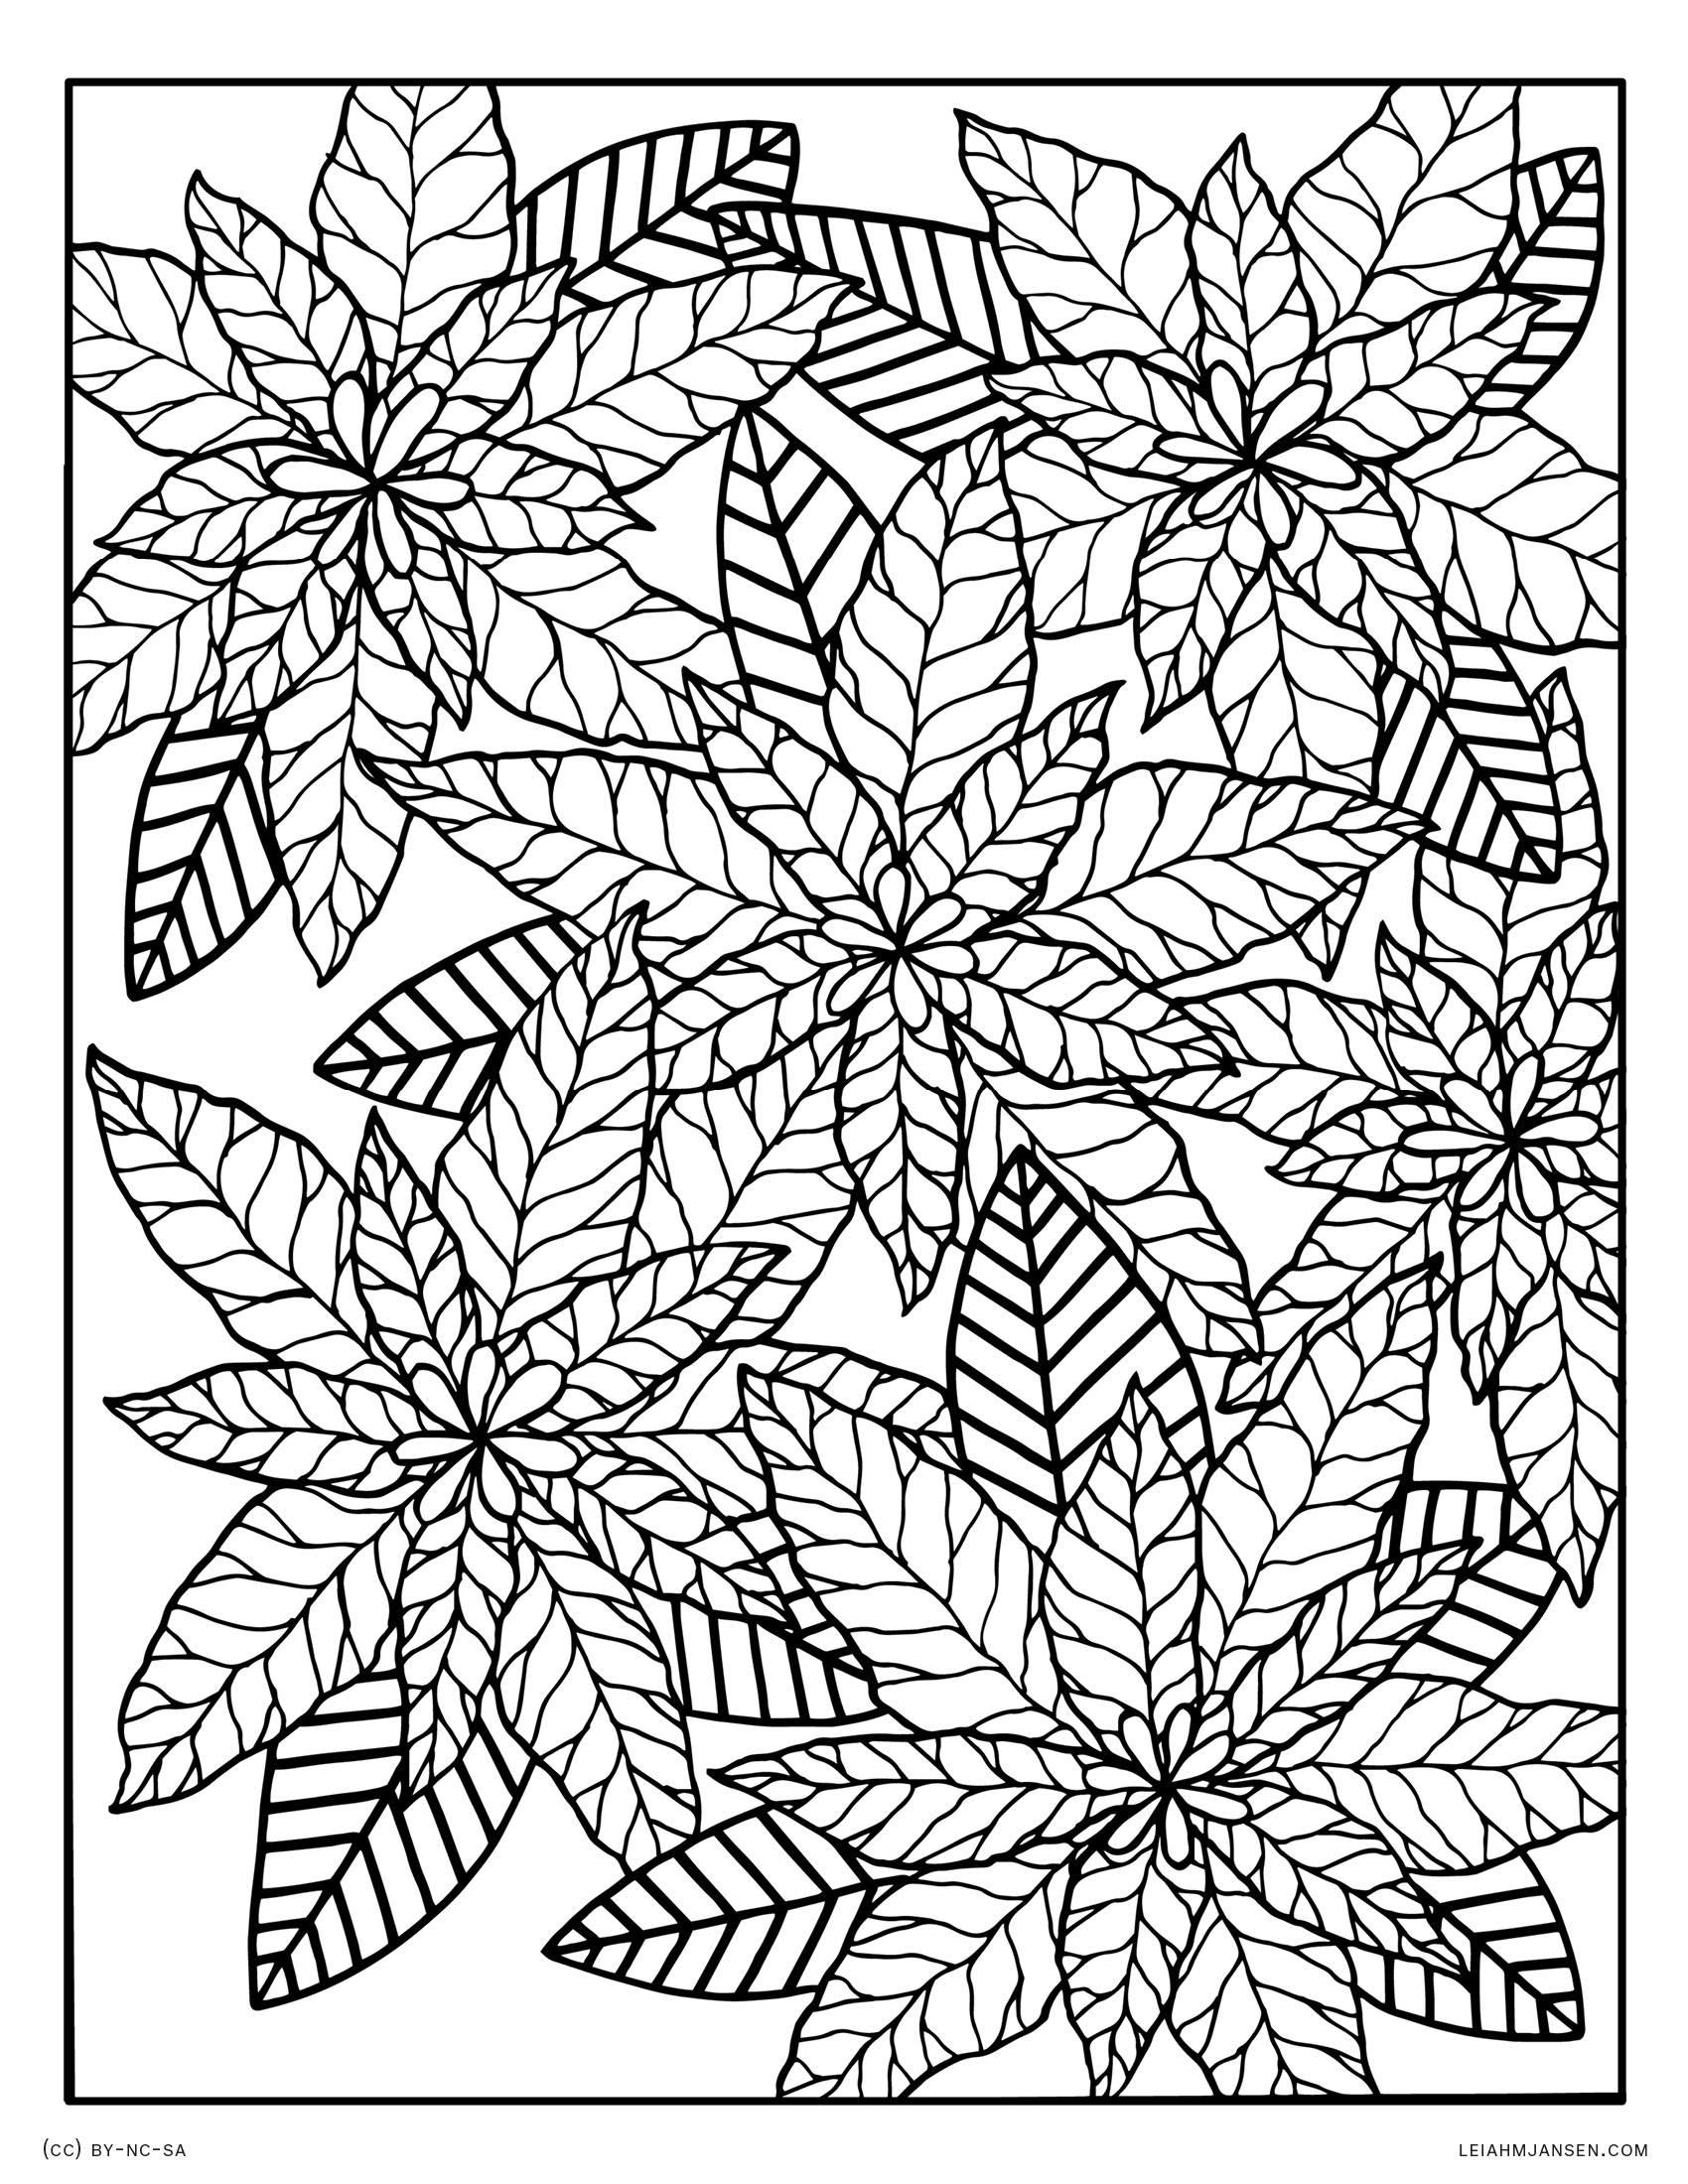 This is an image of Influential Holidays Coloring Book